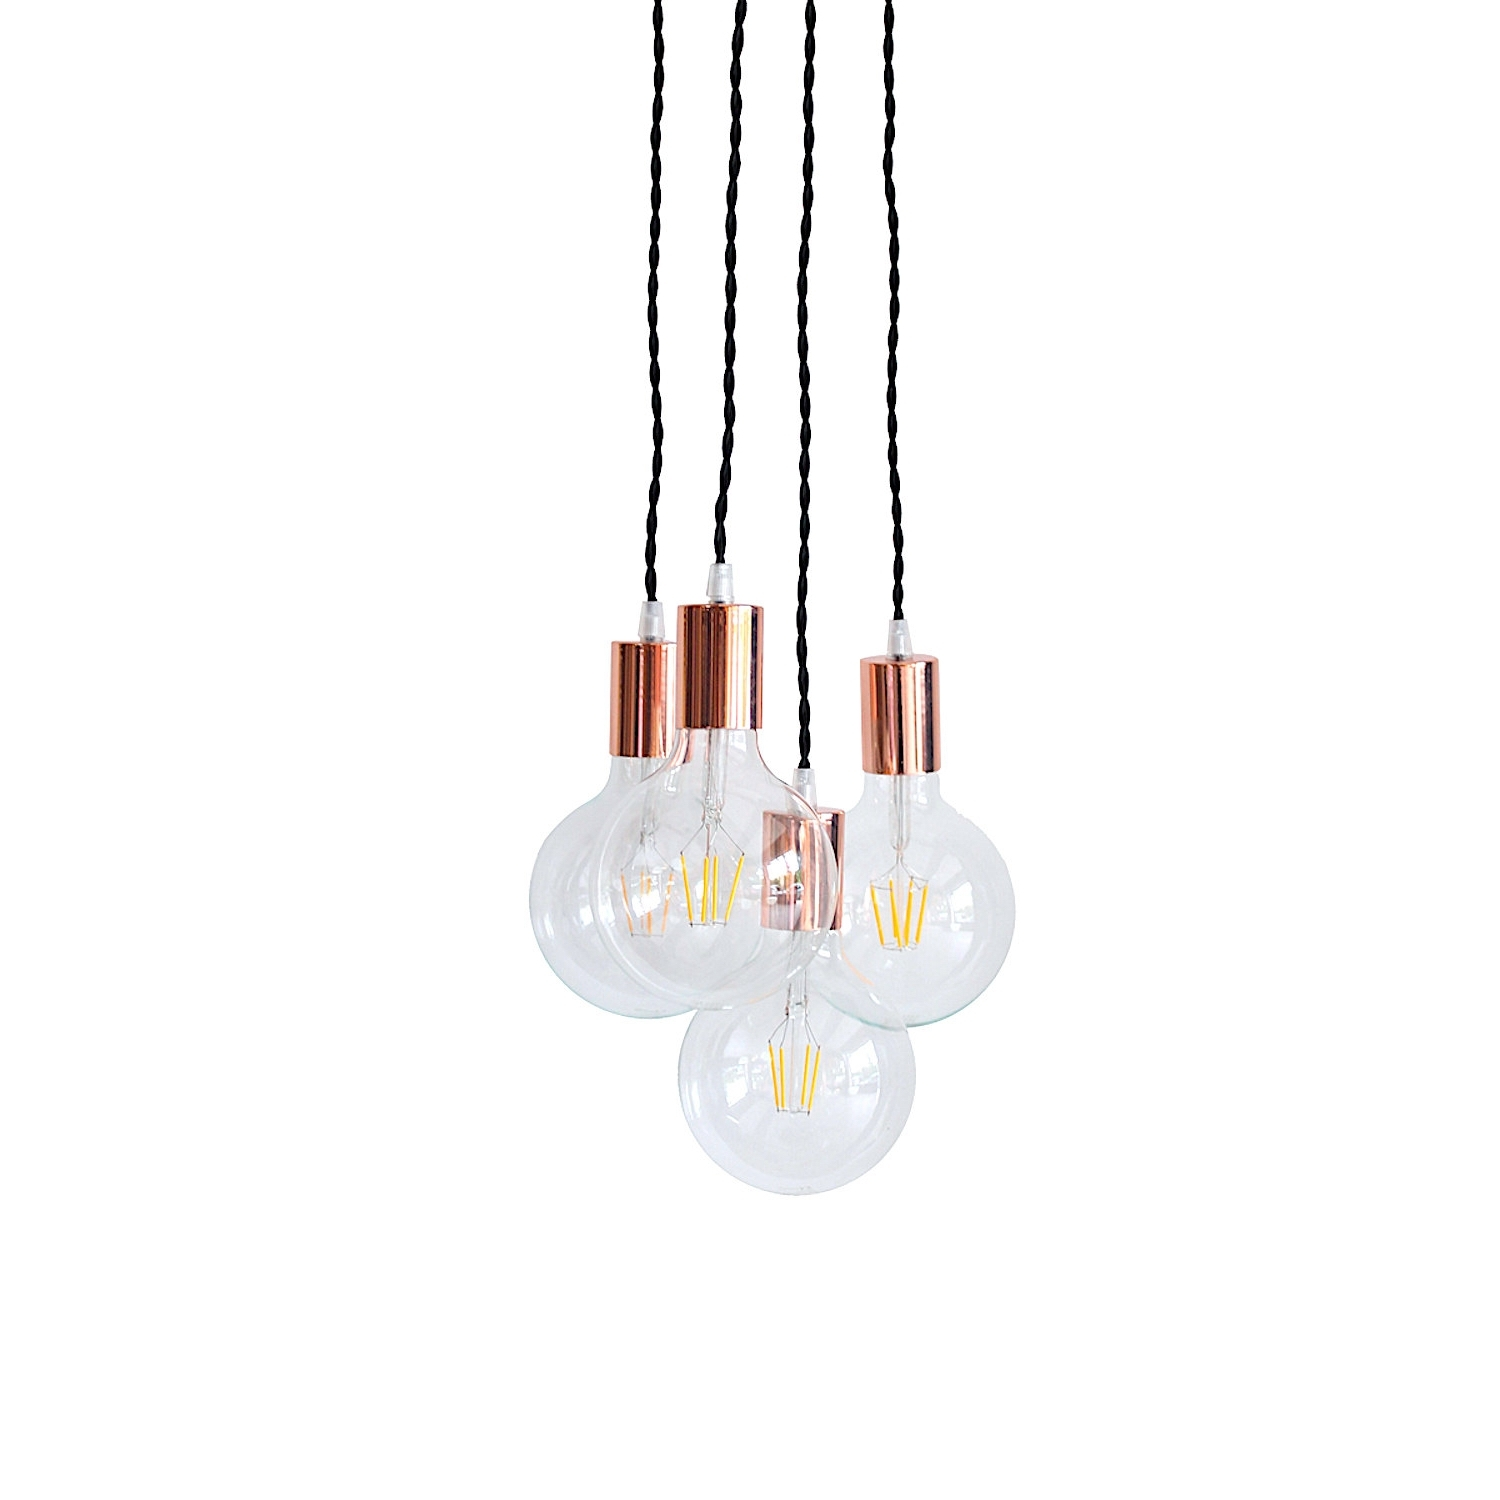 Gold Modern Chandelier Pertaining To Most Recently Released Copper Chandelier Light Cluster Rose Gold Pendant Lighting Swag (View 11 of 15)